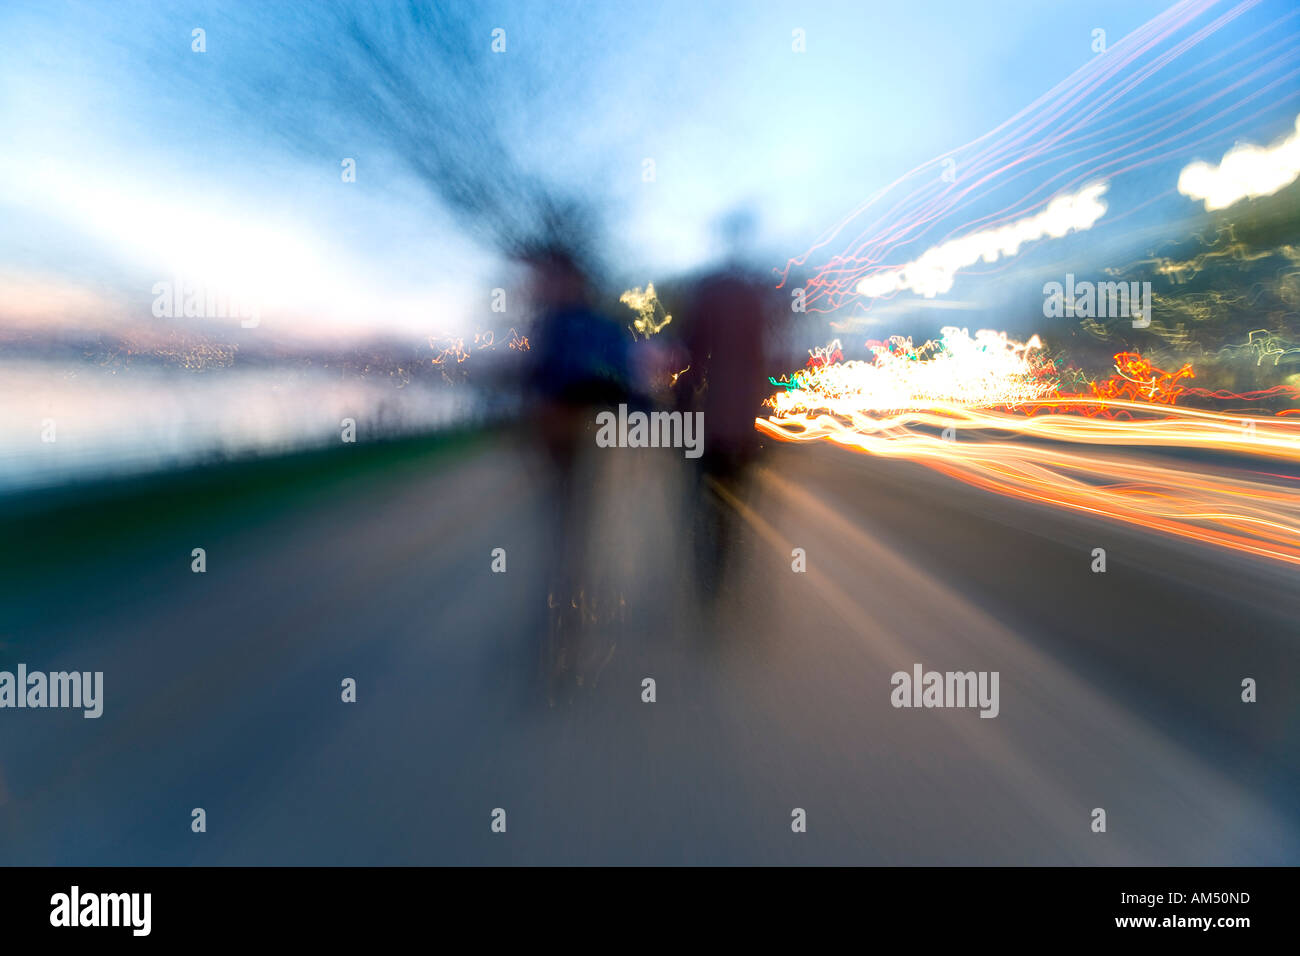 https://c7.alamy.com/comp/AM50ND/extremely-blurred-zooming-effect-image-of-people-walking-of-into-the-AM50ND.jpg